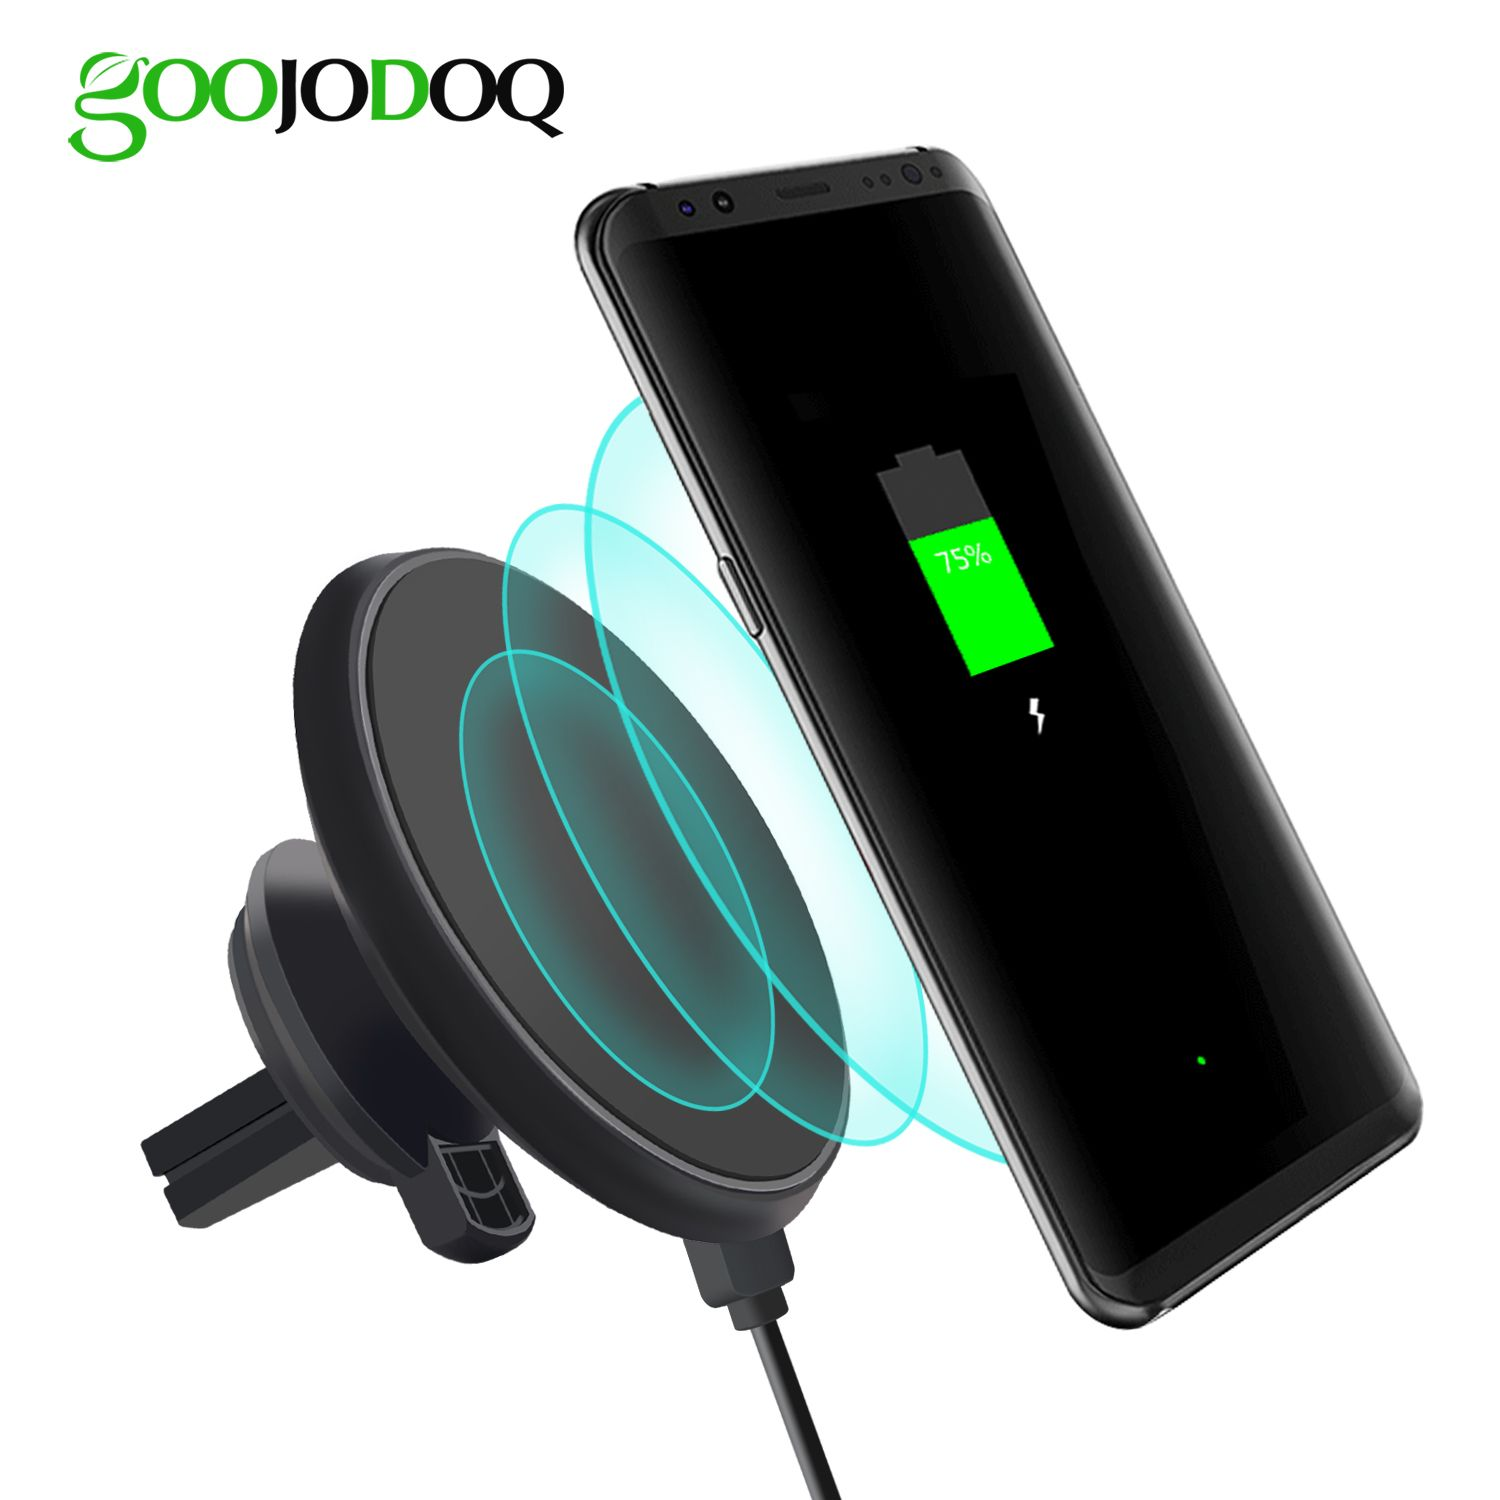 Magnetic QI Car Wireless Charger For iPhone 8 iPhone X Samsung S8 S8 Plus S7 Edge S7 Wireless Car Charger Air Vent Stand